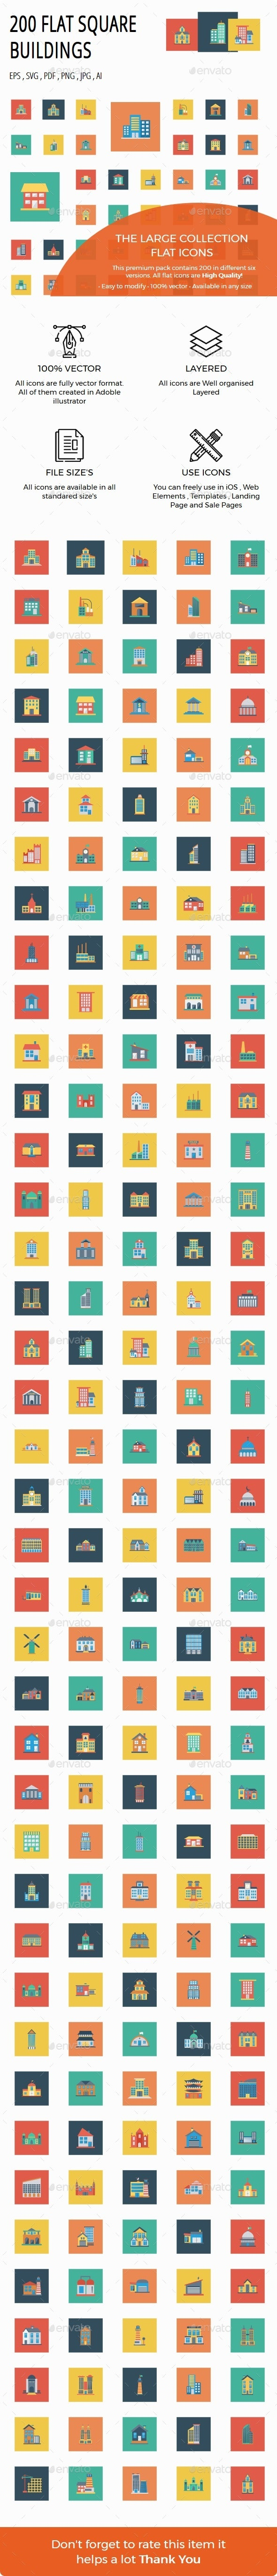 200 Building Flat Square icons